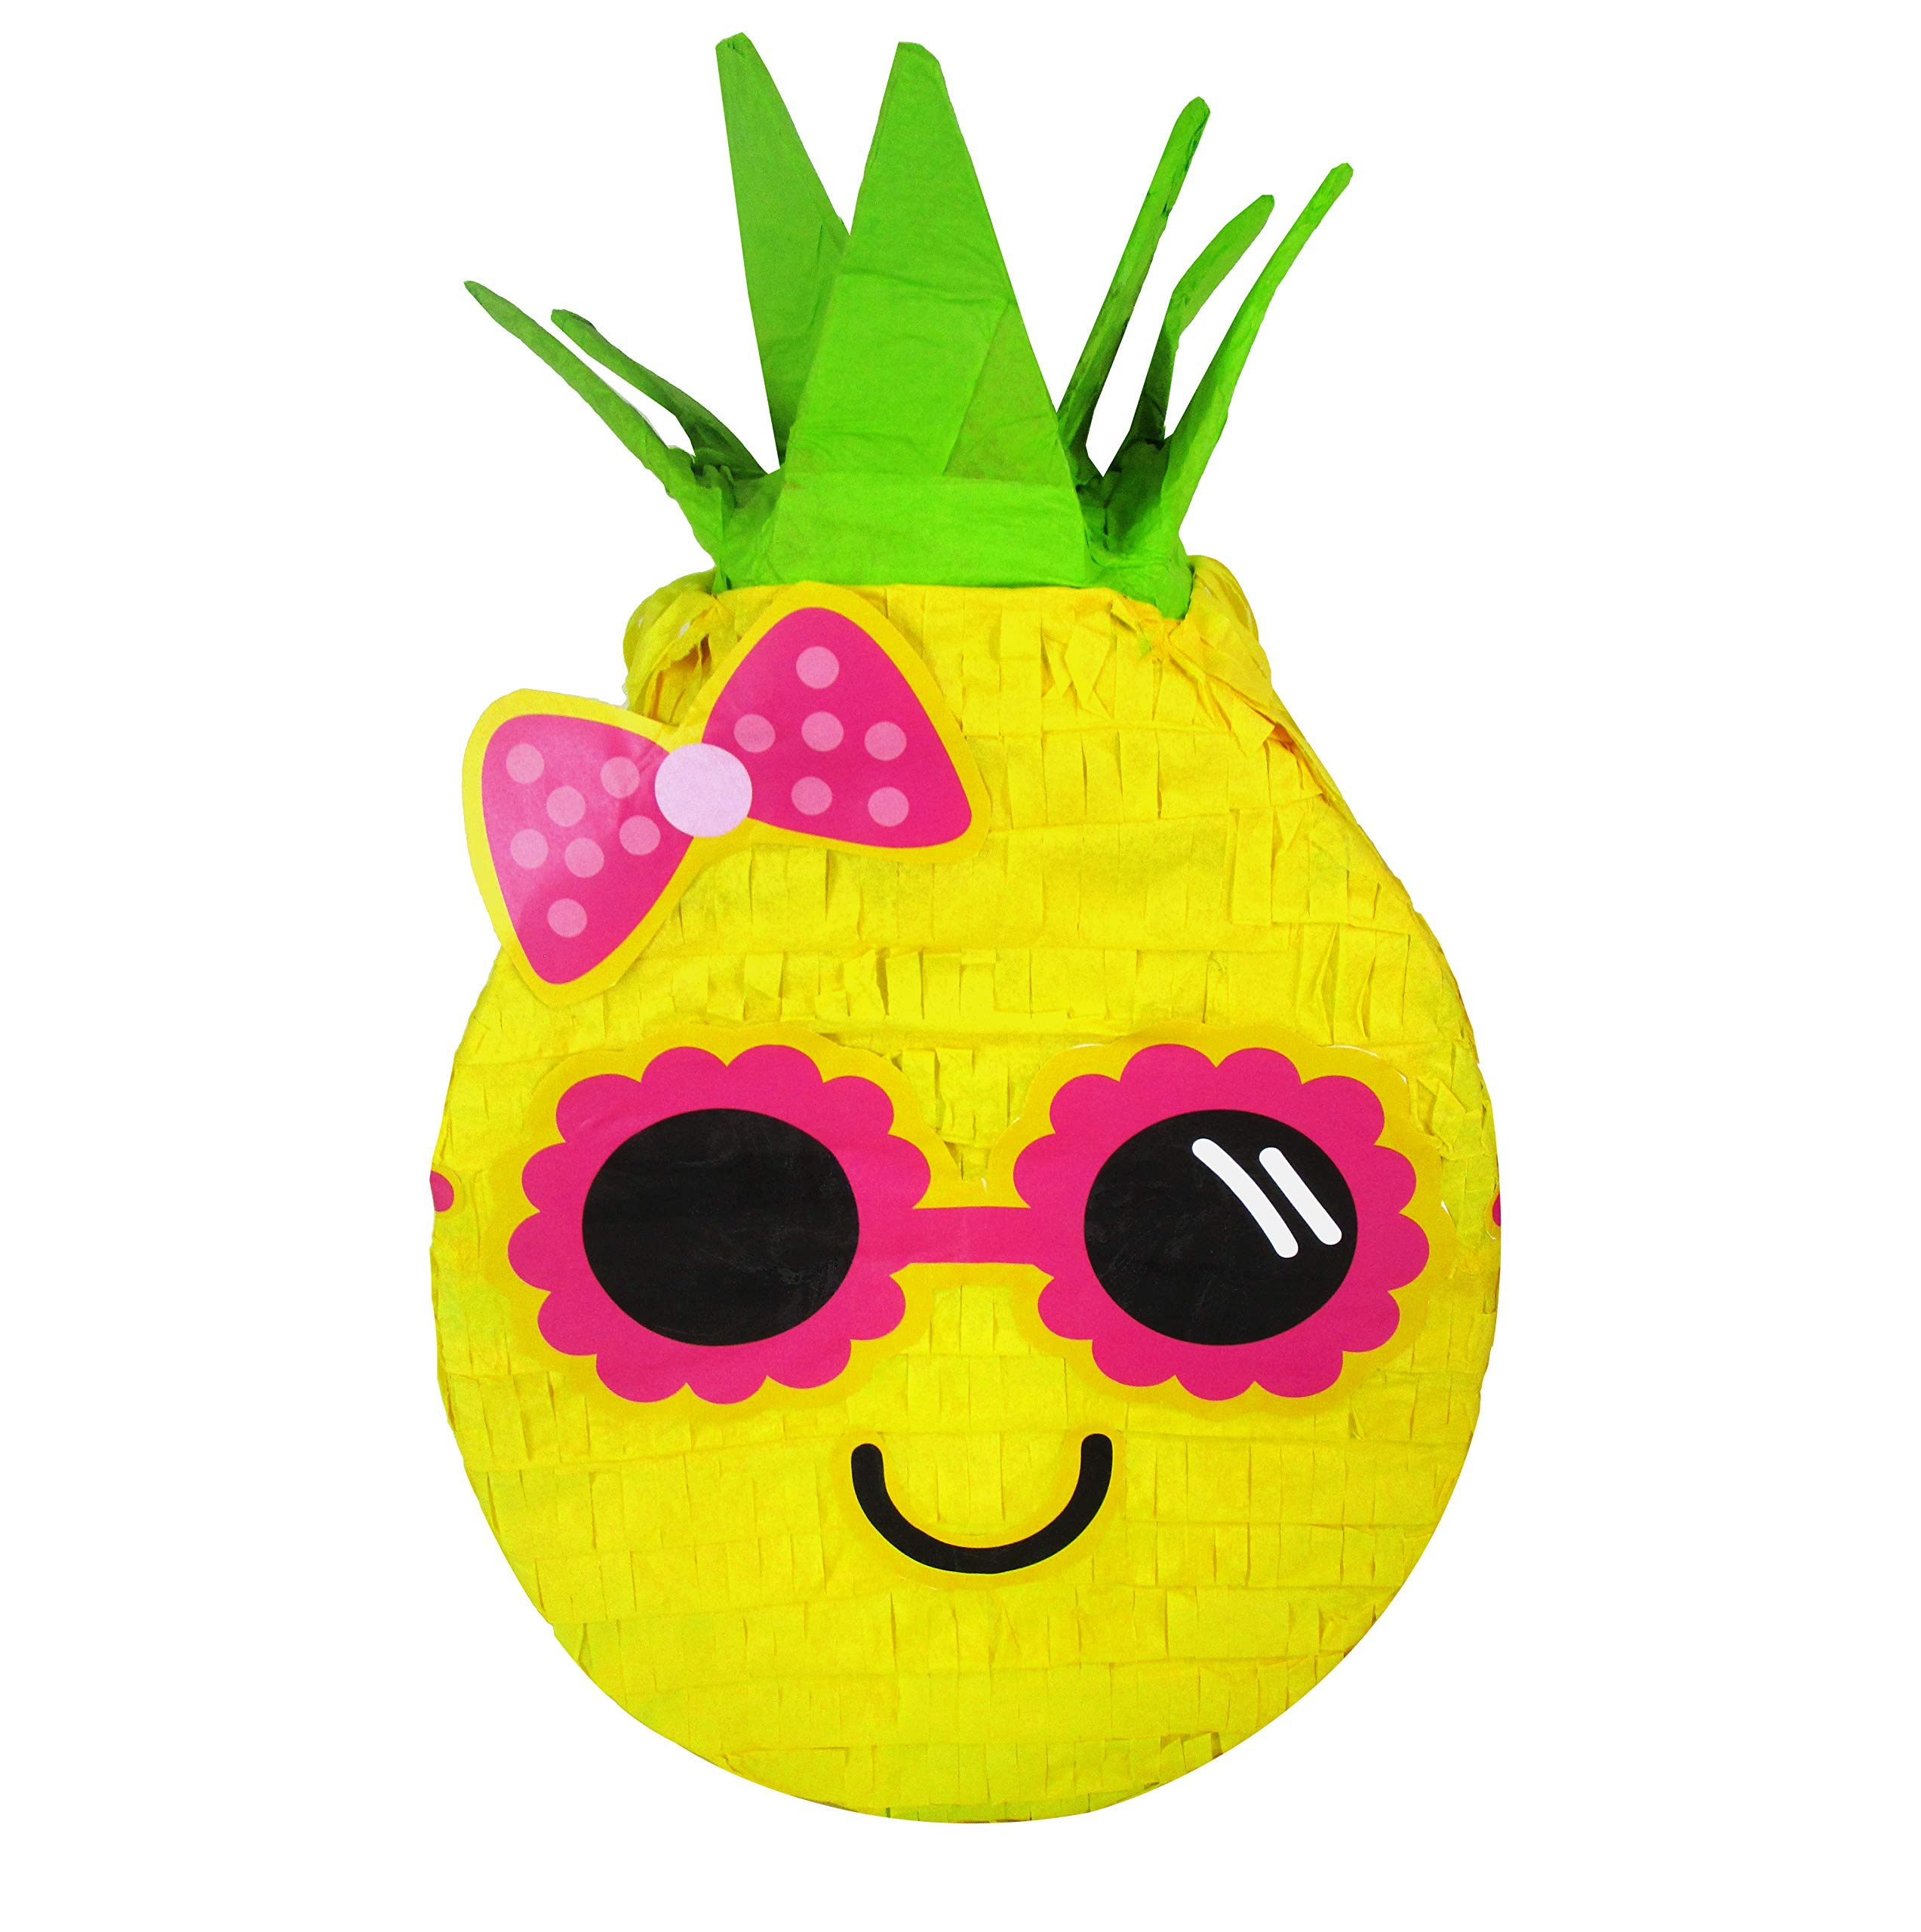 Cool Pineapple Pinata for Luaus